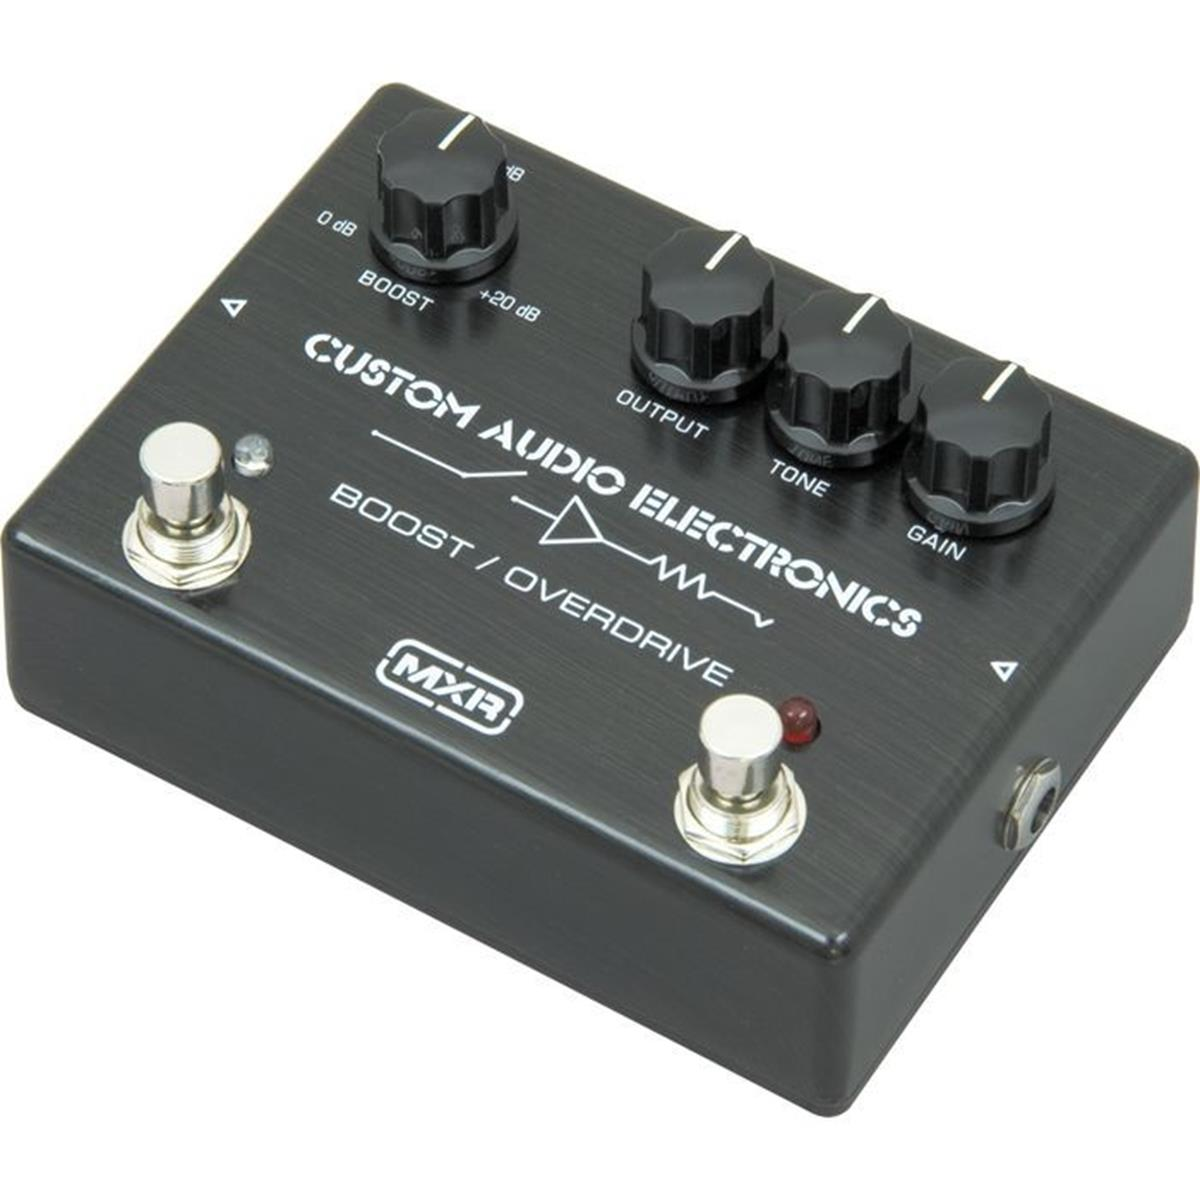 MXR-MC-402-CUSTOM-AUDIO-BOOST-OD-sku-1306